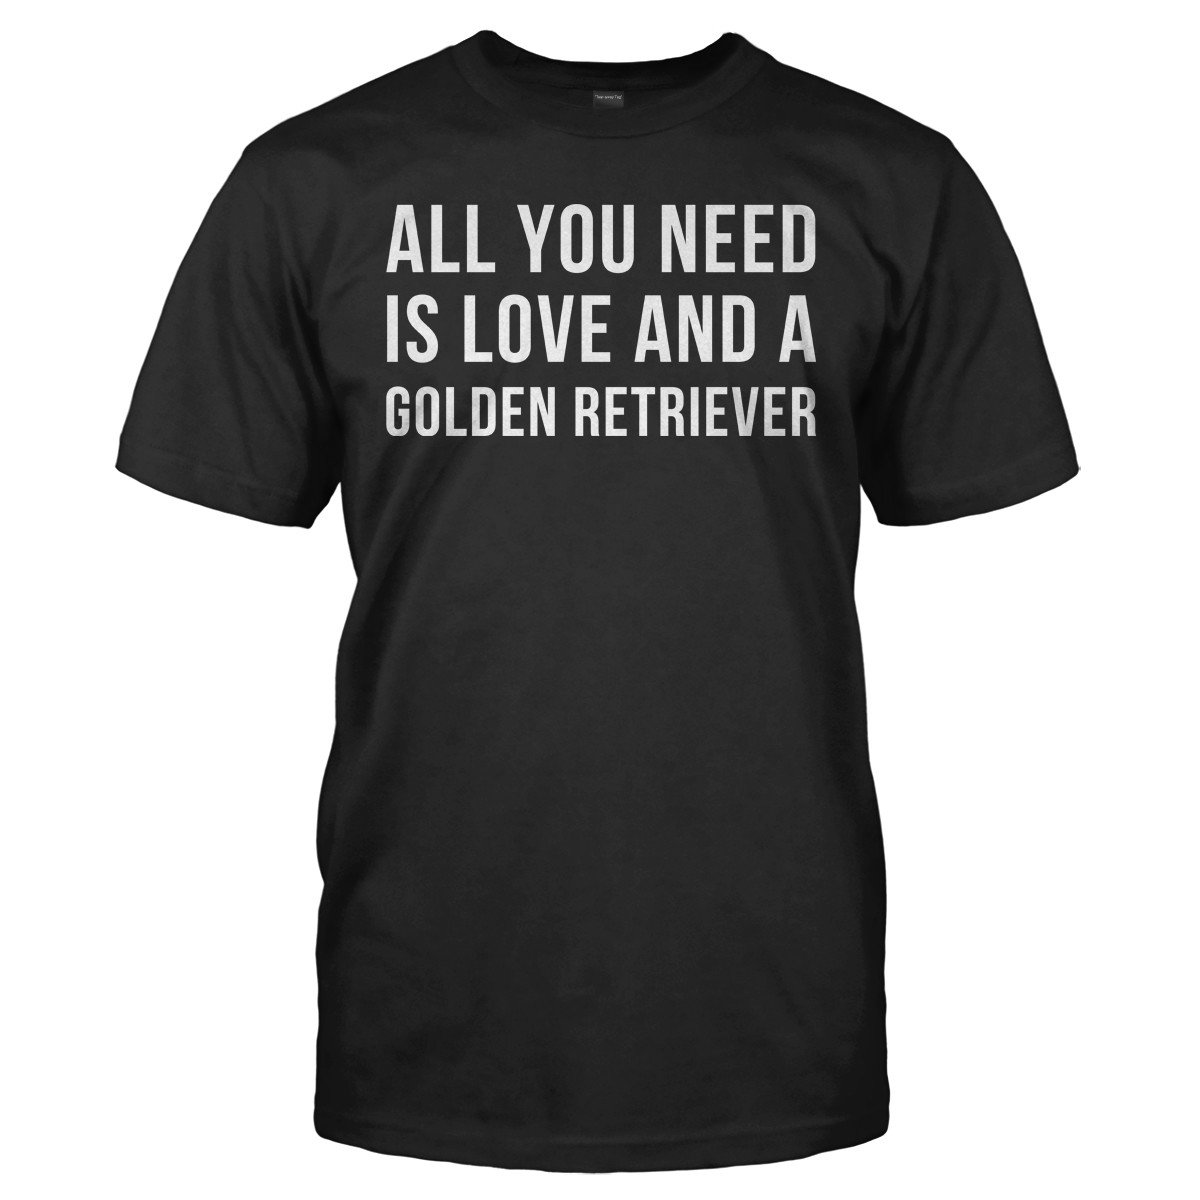 All You Need Is Love And A Golden Retriever - T Shirt